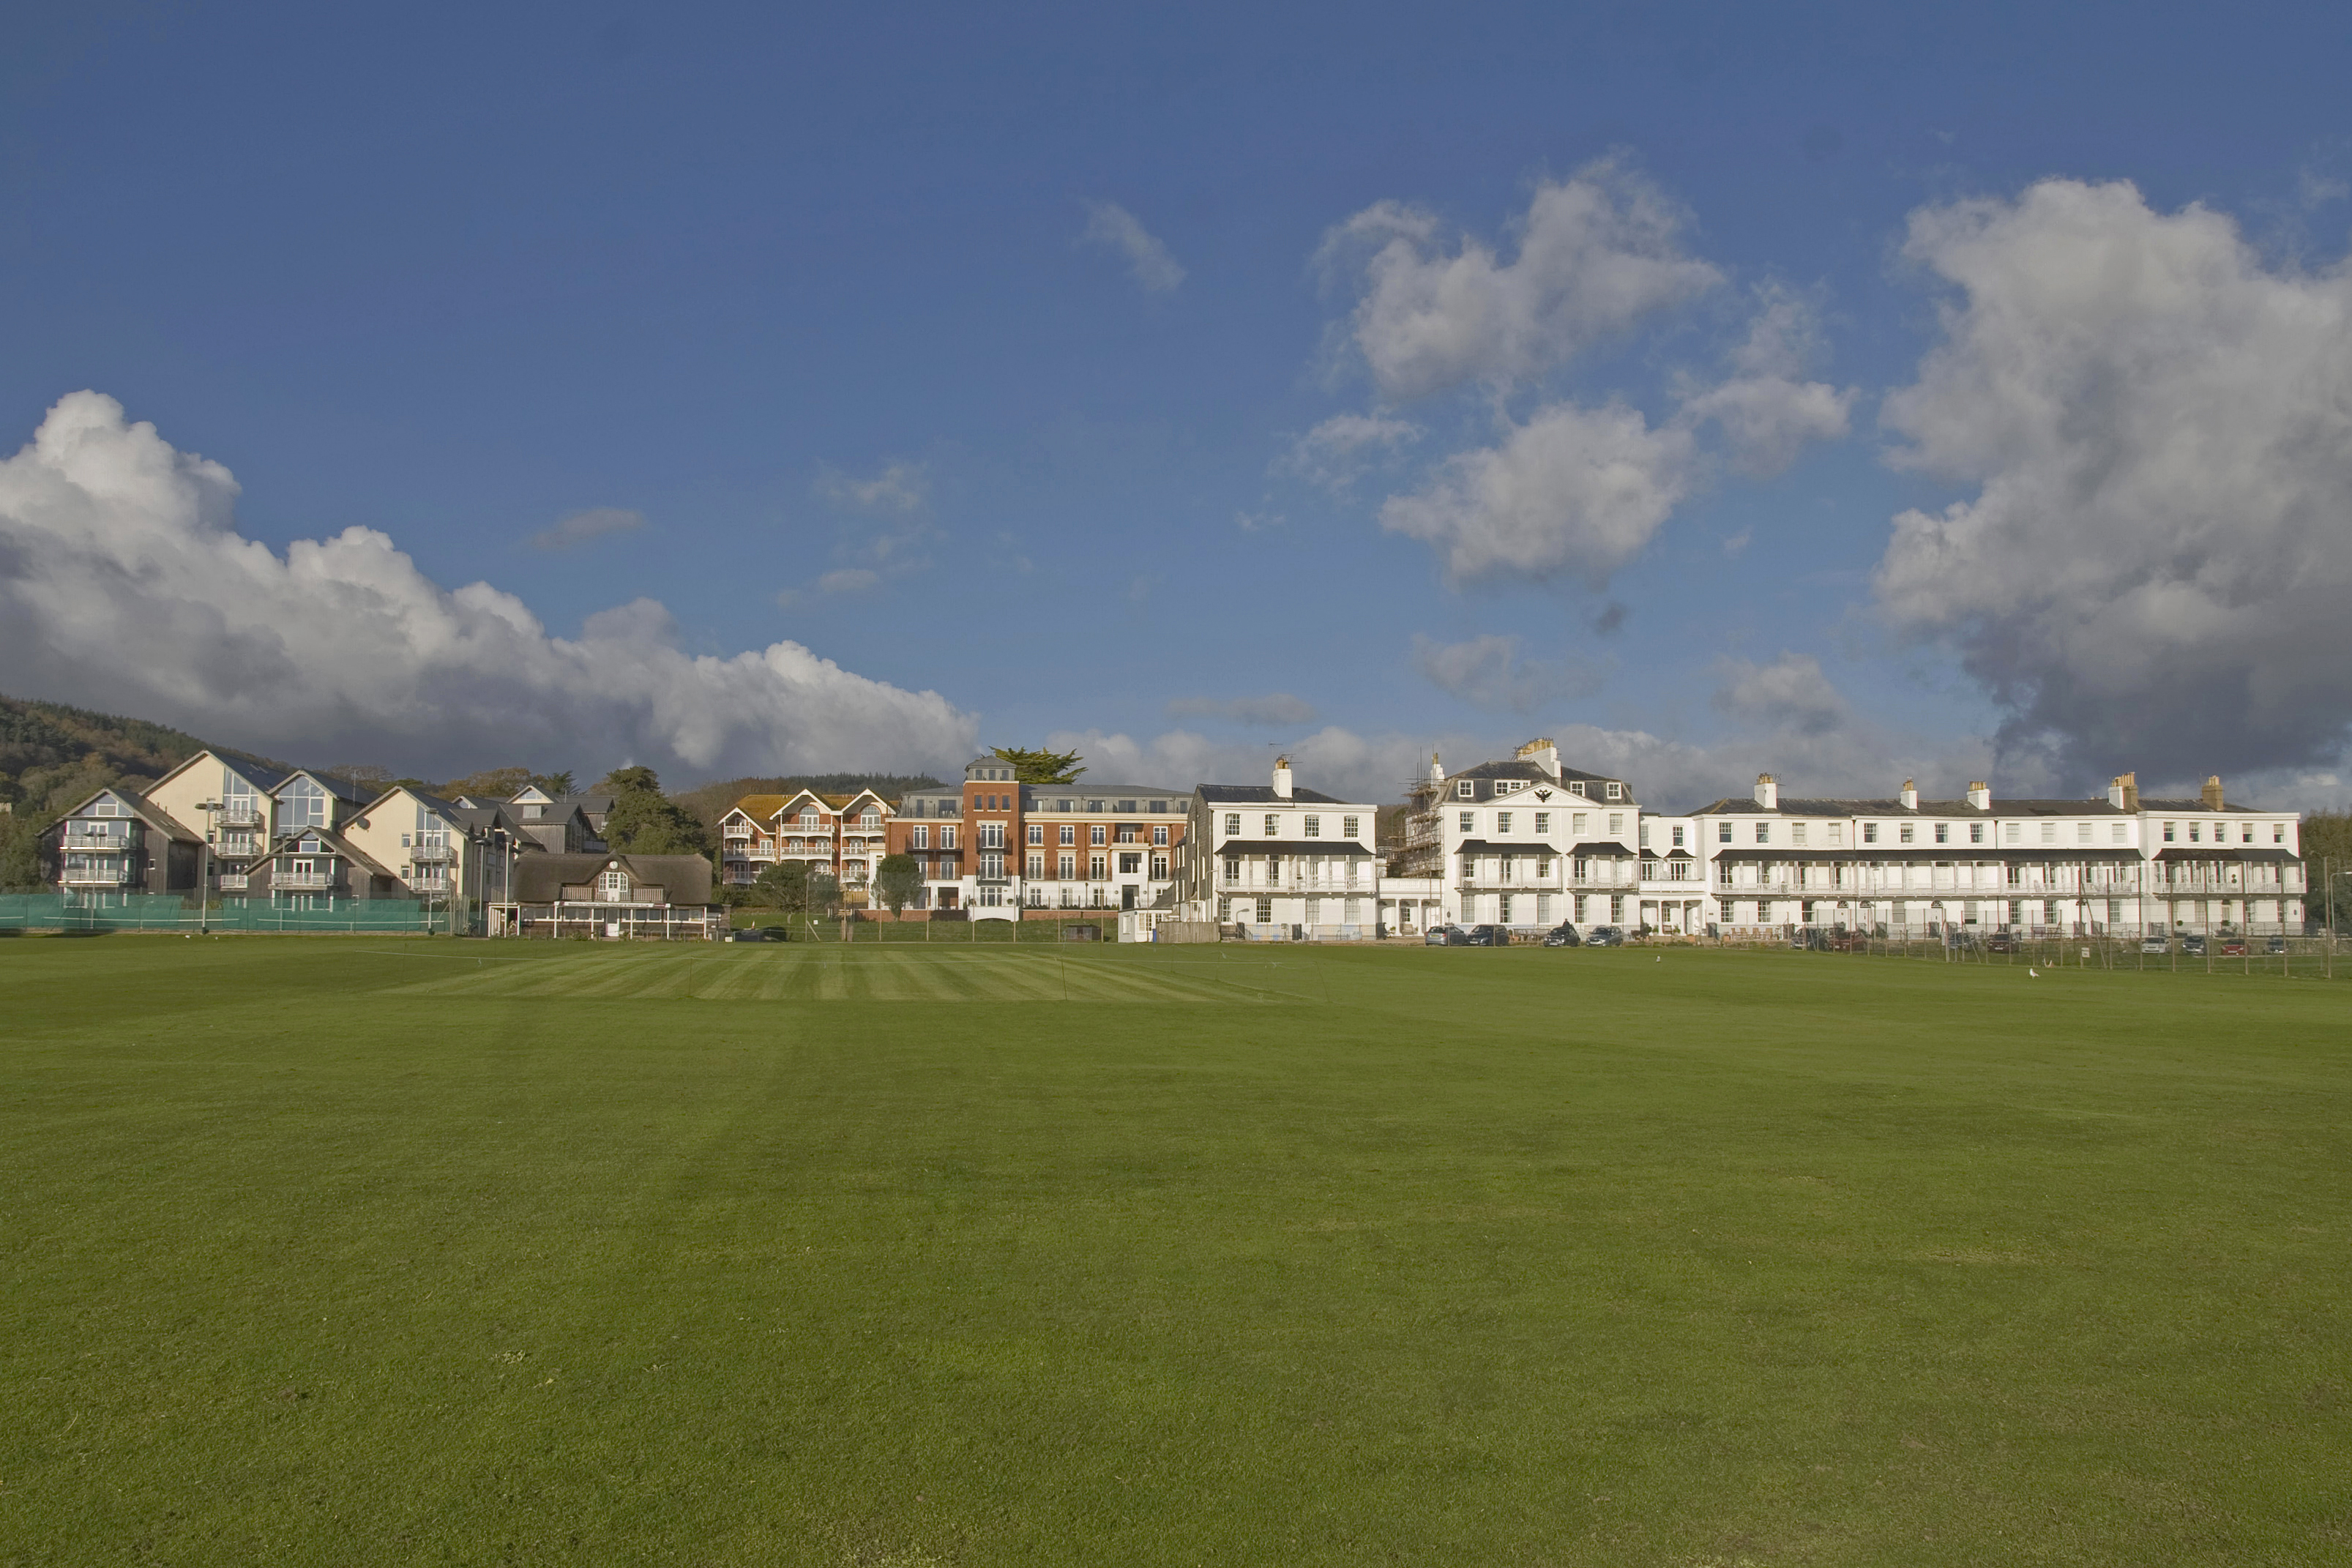 Apartments in Sidmouth, Devon - in the context of the listed buildings & conservation area